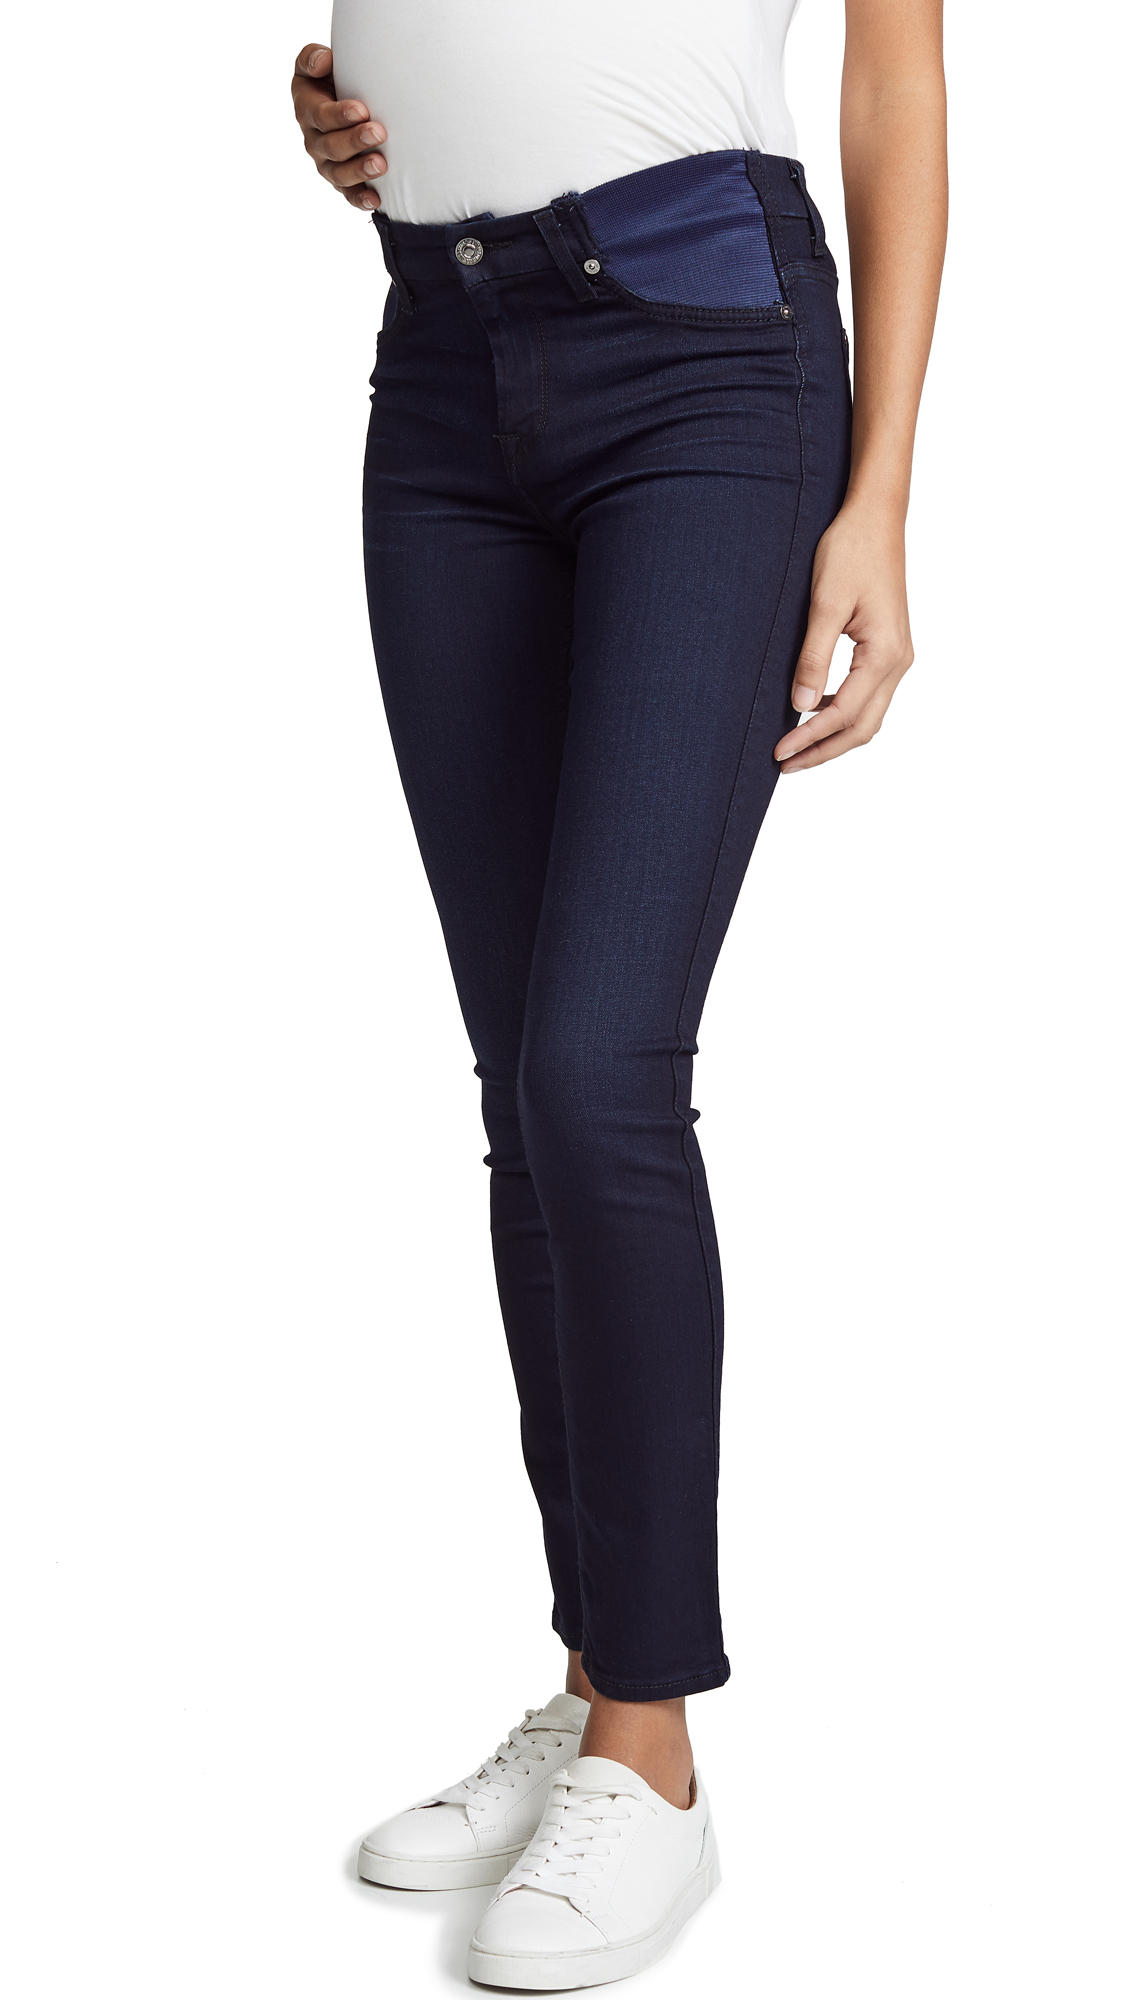 7 For All Mankind High Rise Skinny Maternity Jeans - River Thames